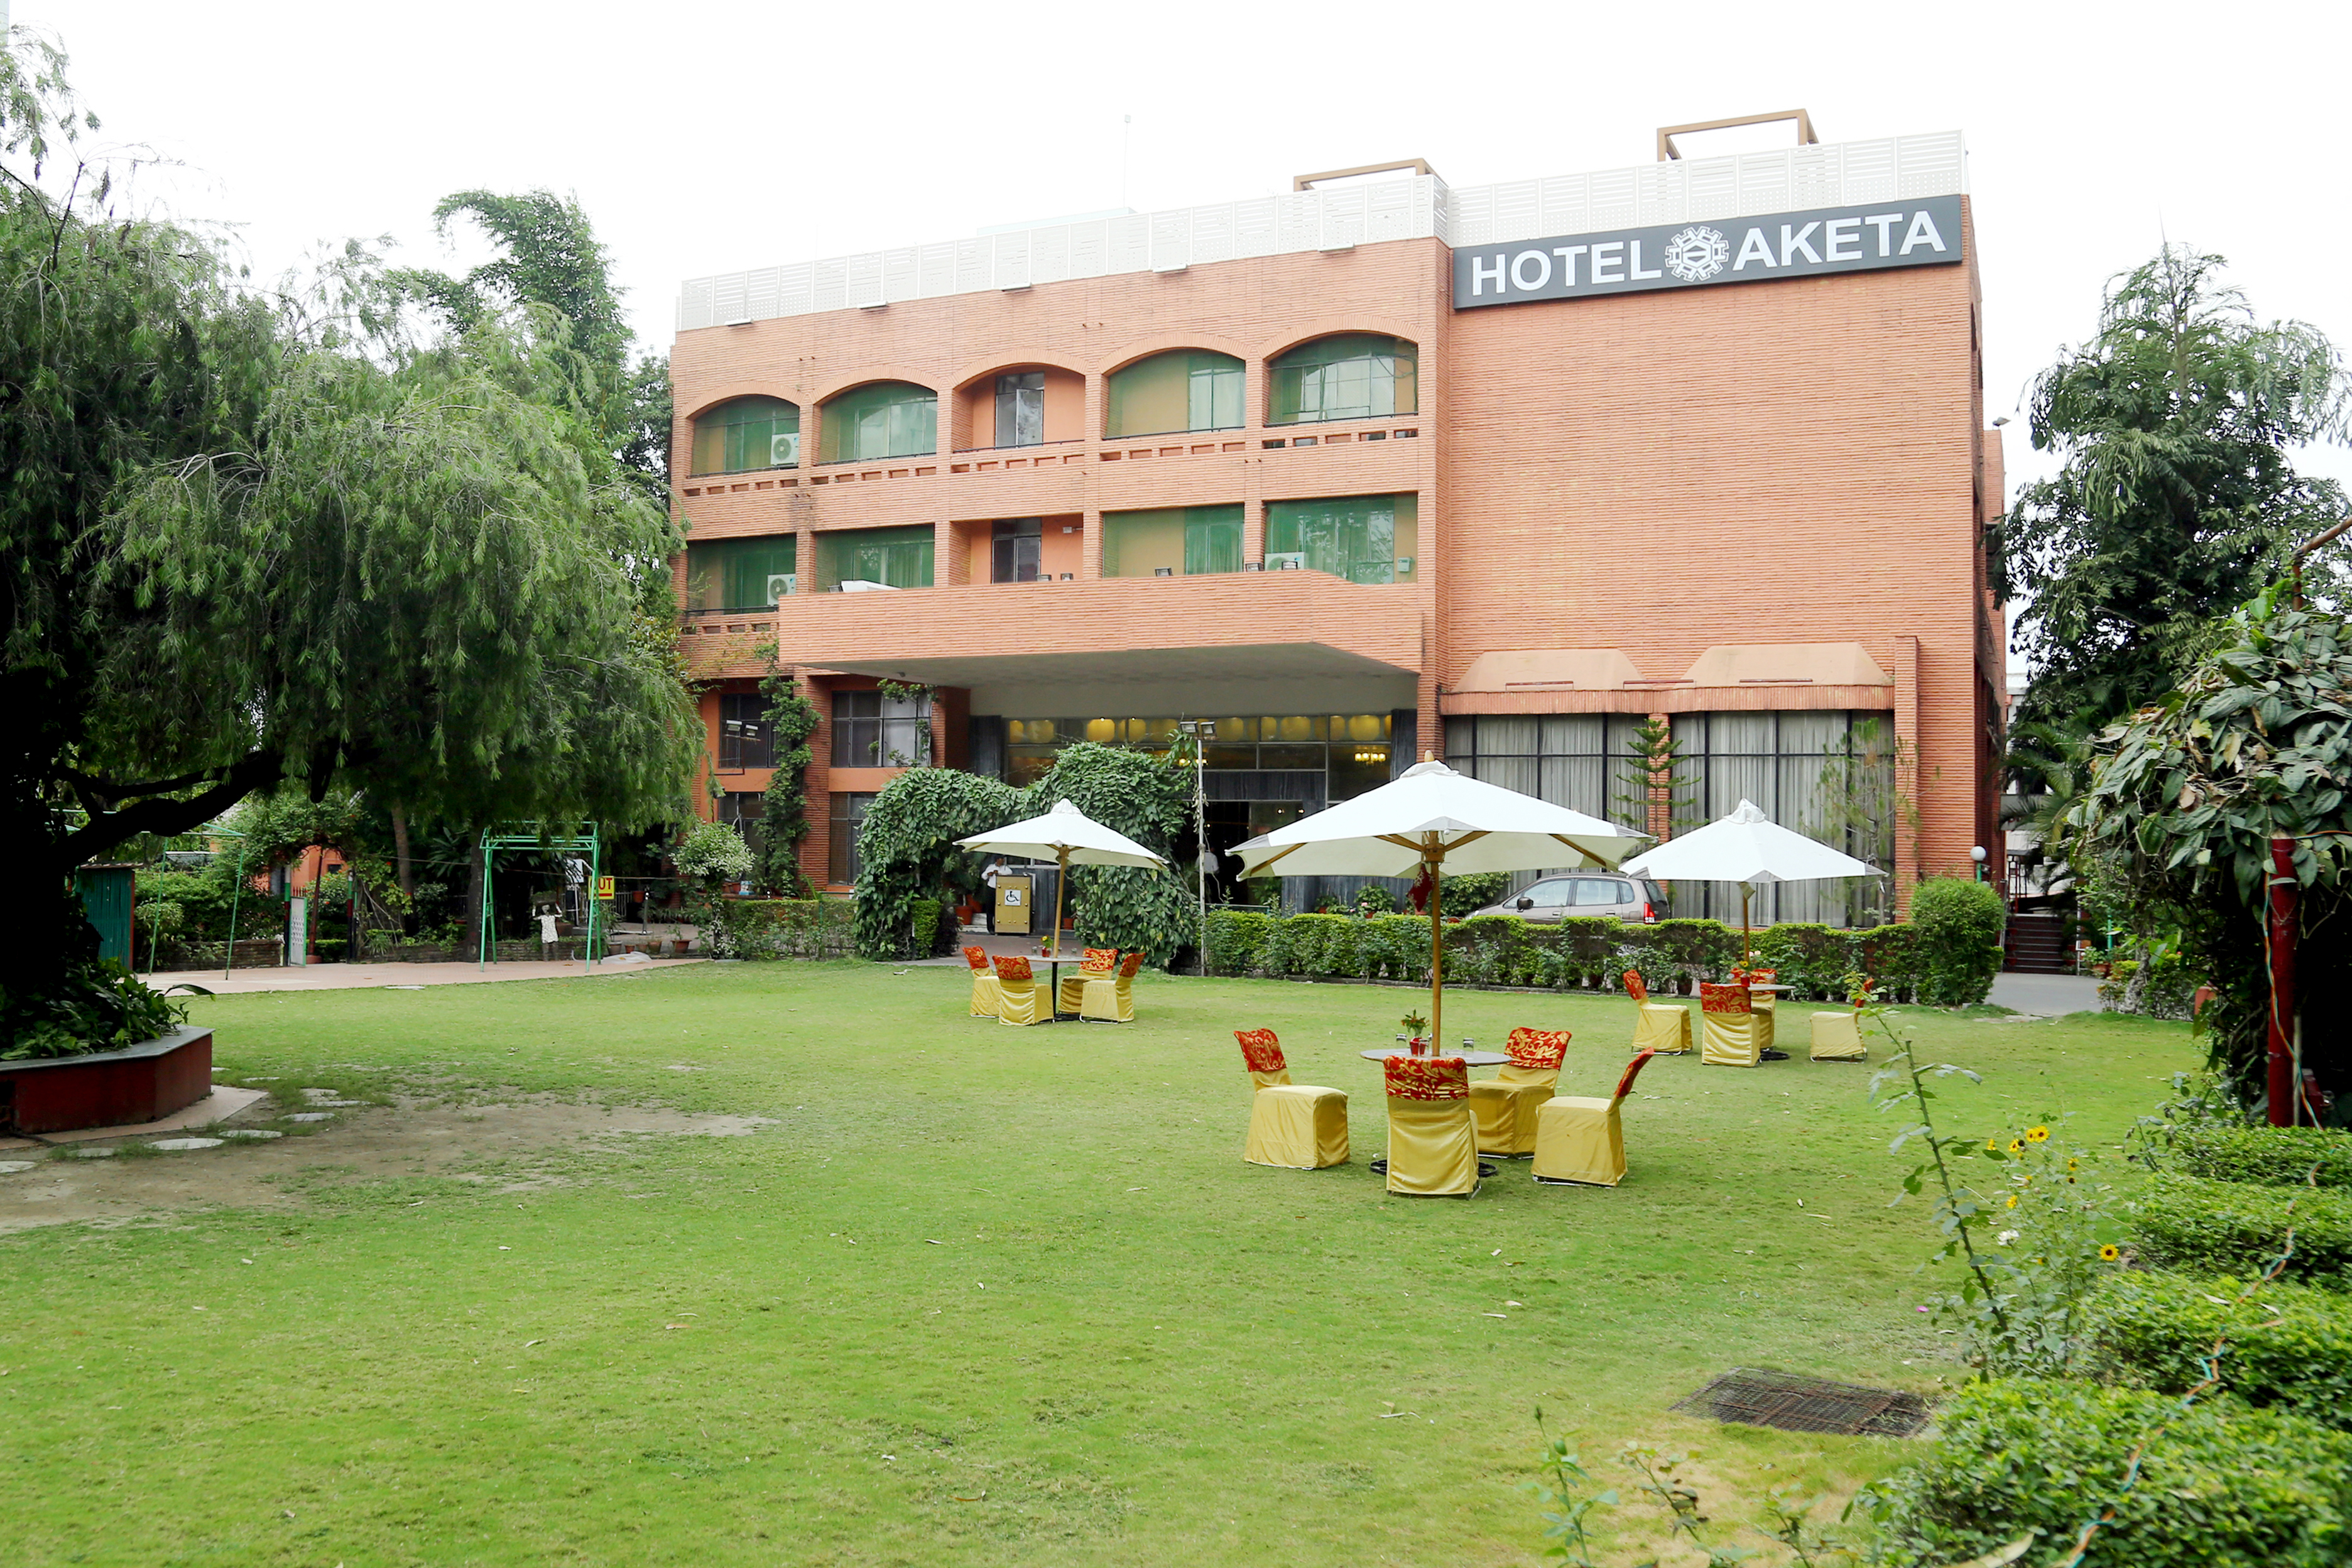 Large Photograph of AKETA HOTEL DEHRADUN located in Dehradun